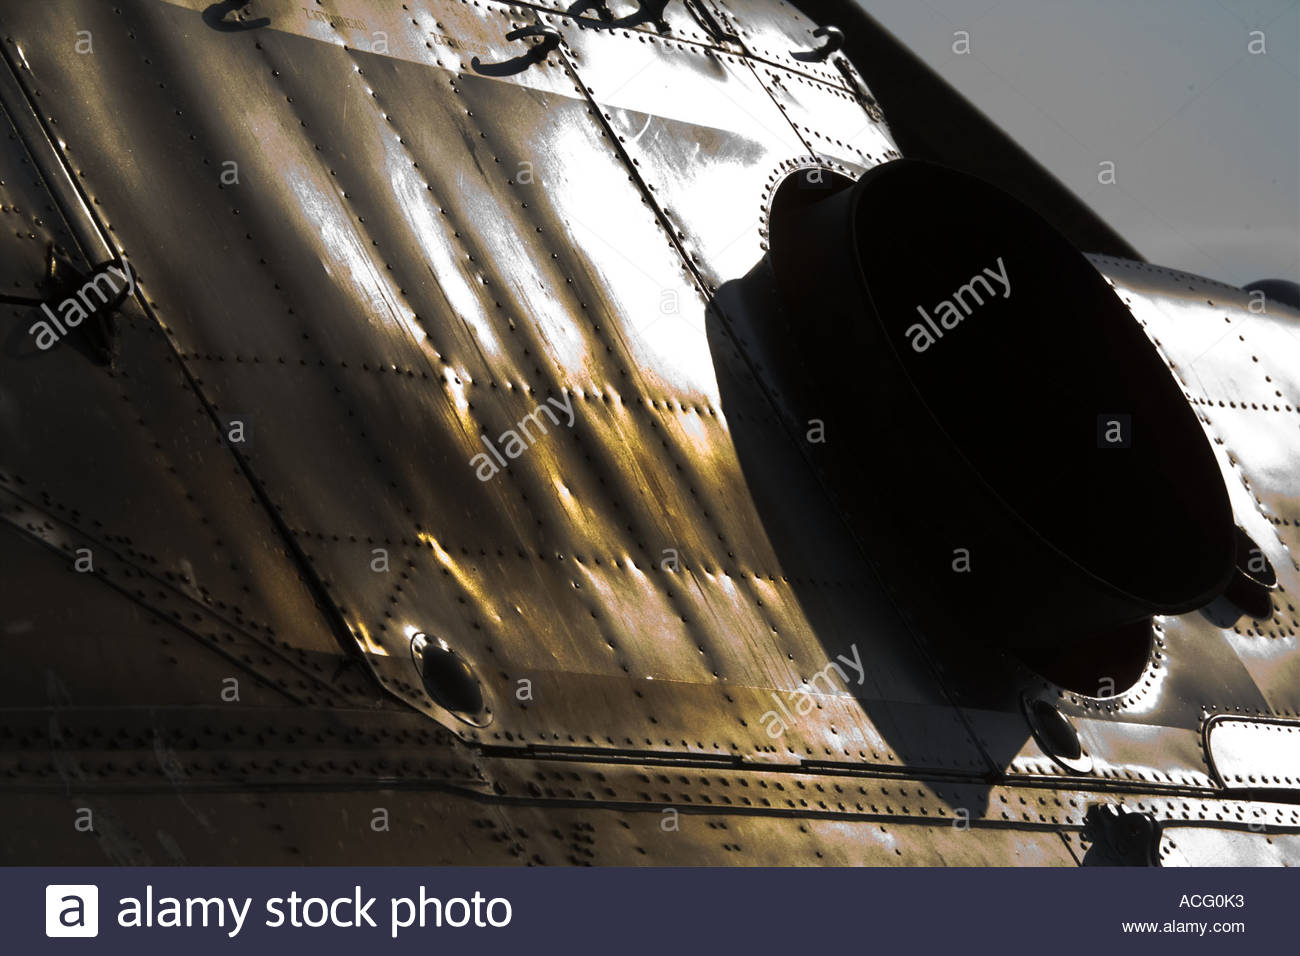 Sheet metal on helicopter airframe shining in this extreme contrasty image - Stock Image